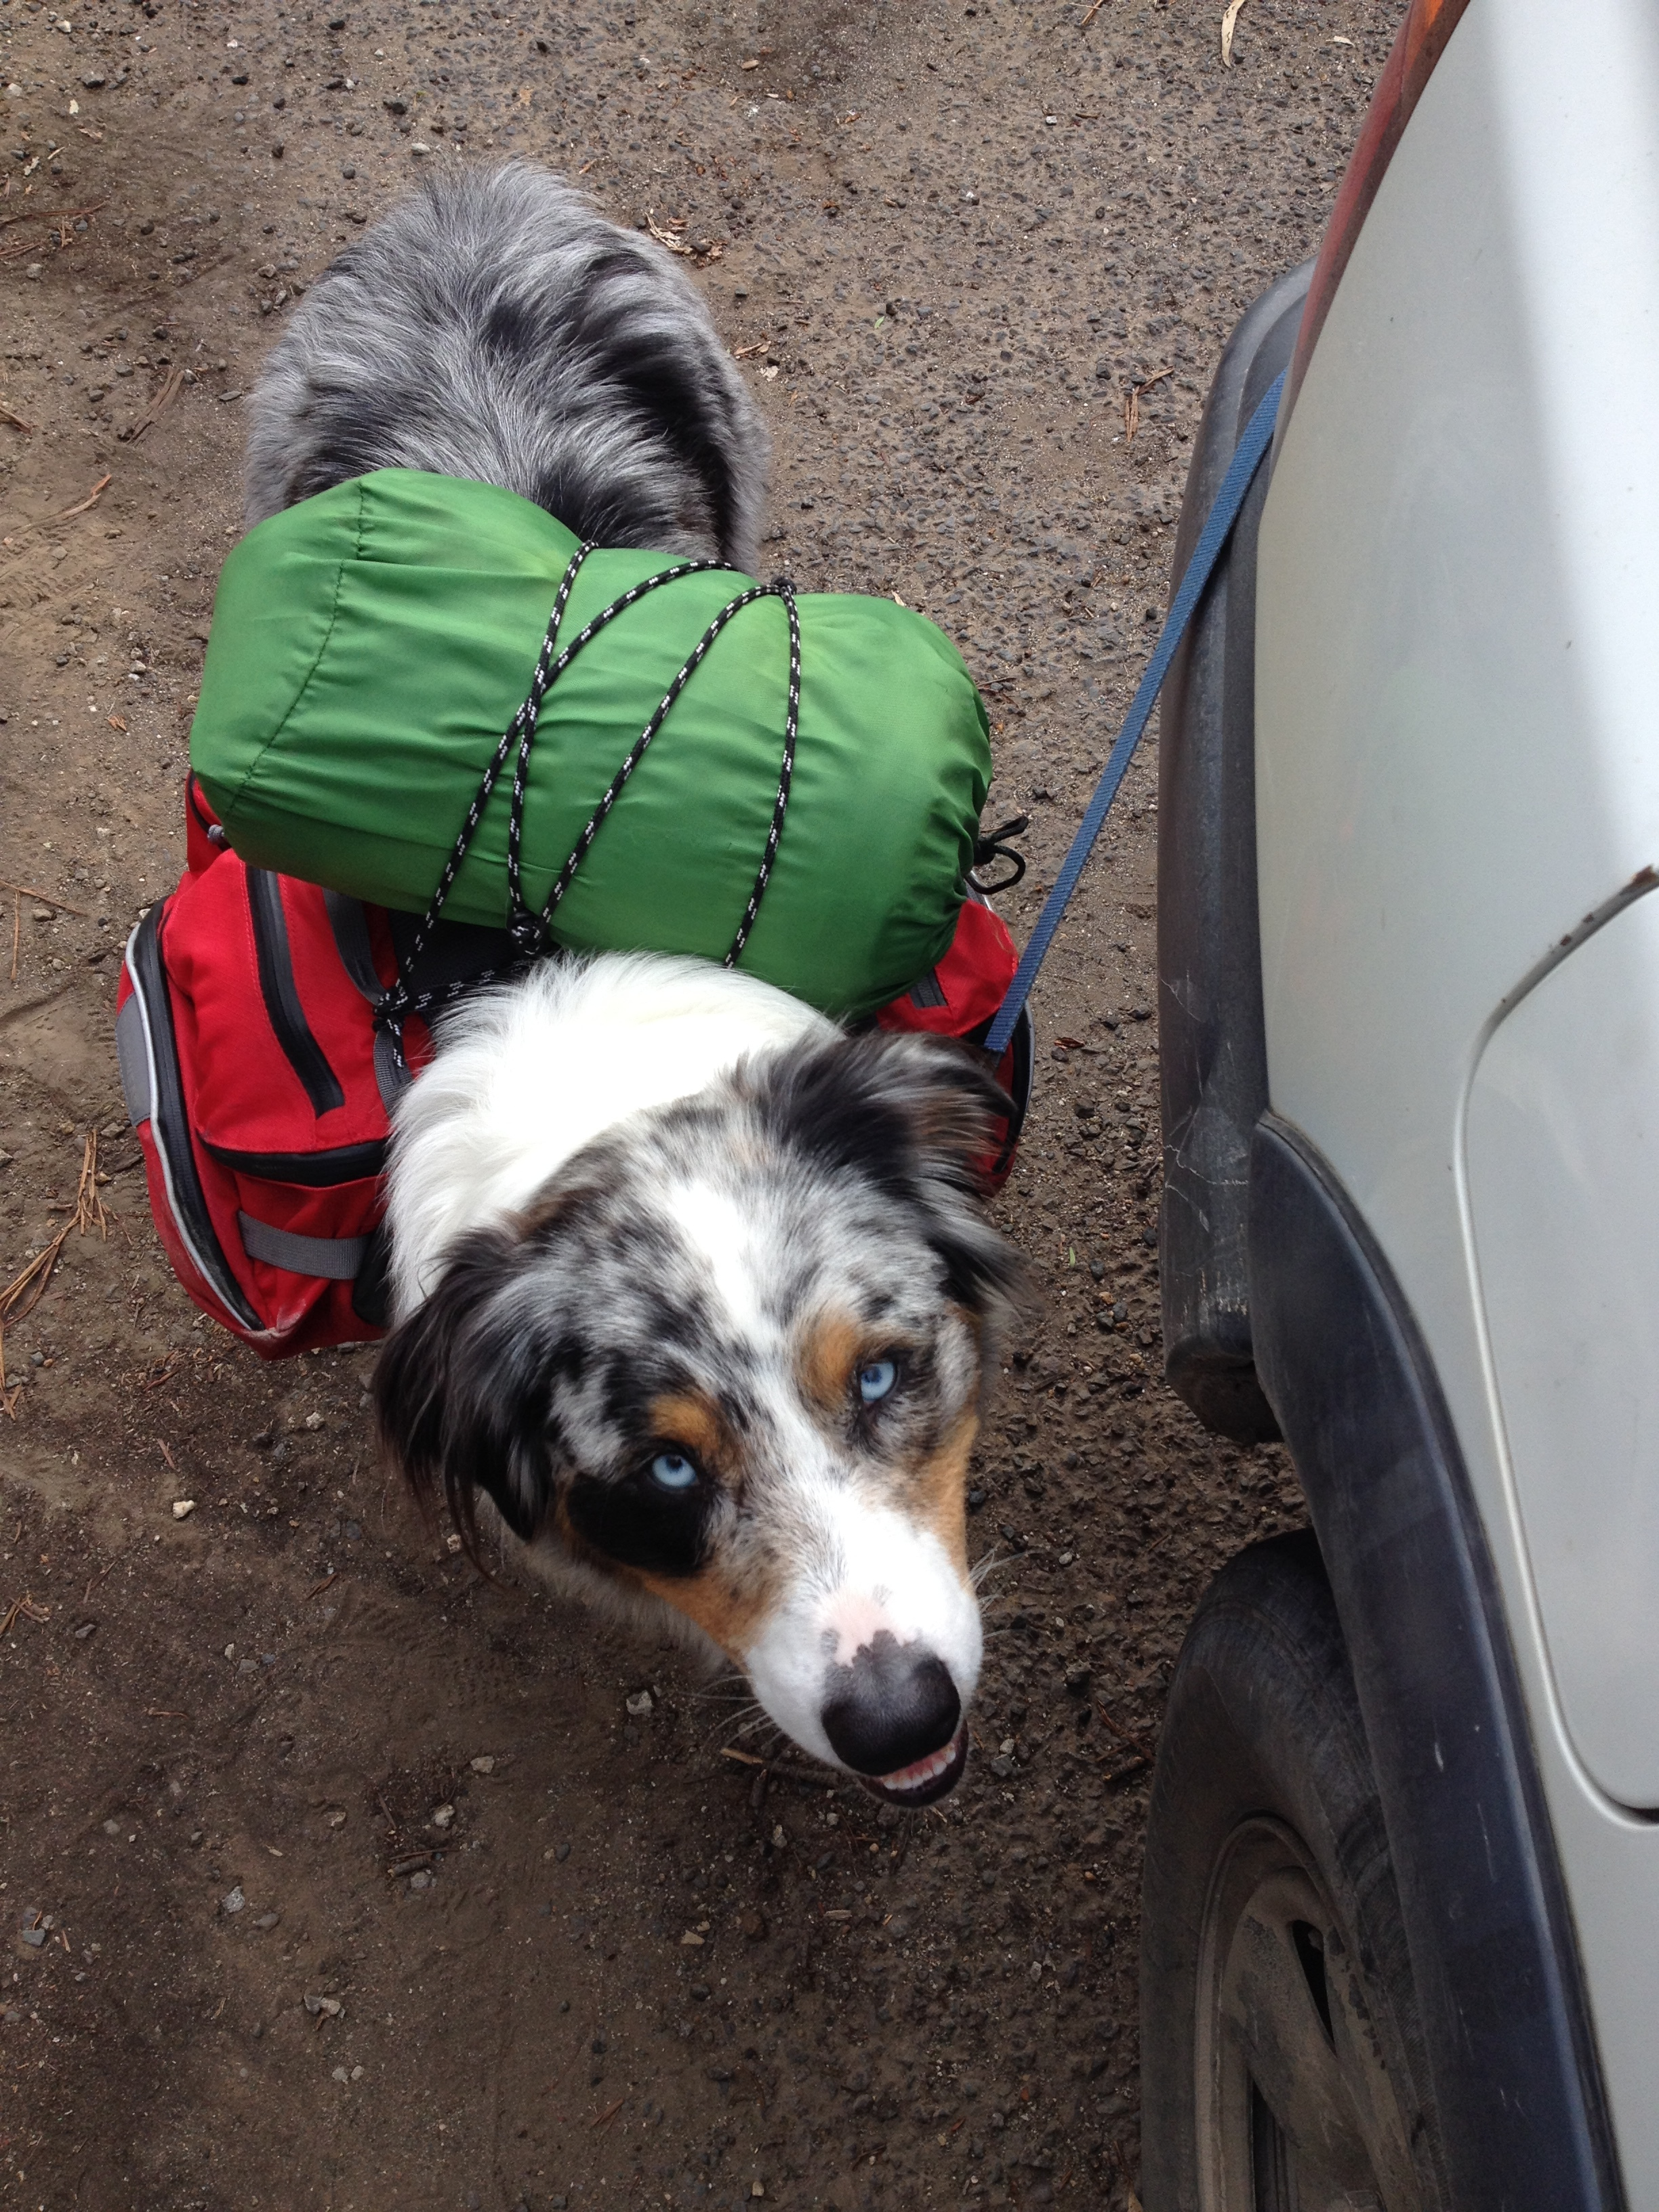 Loki the Australian Shepherd ready for adventure.